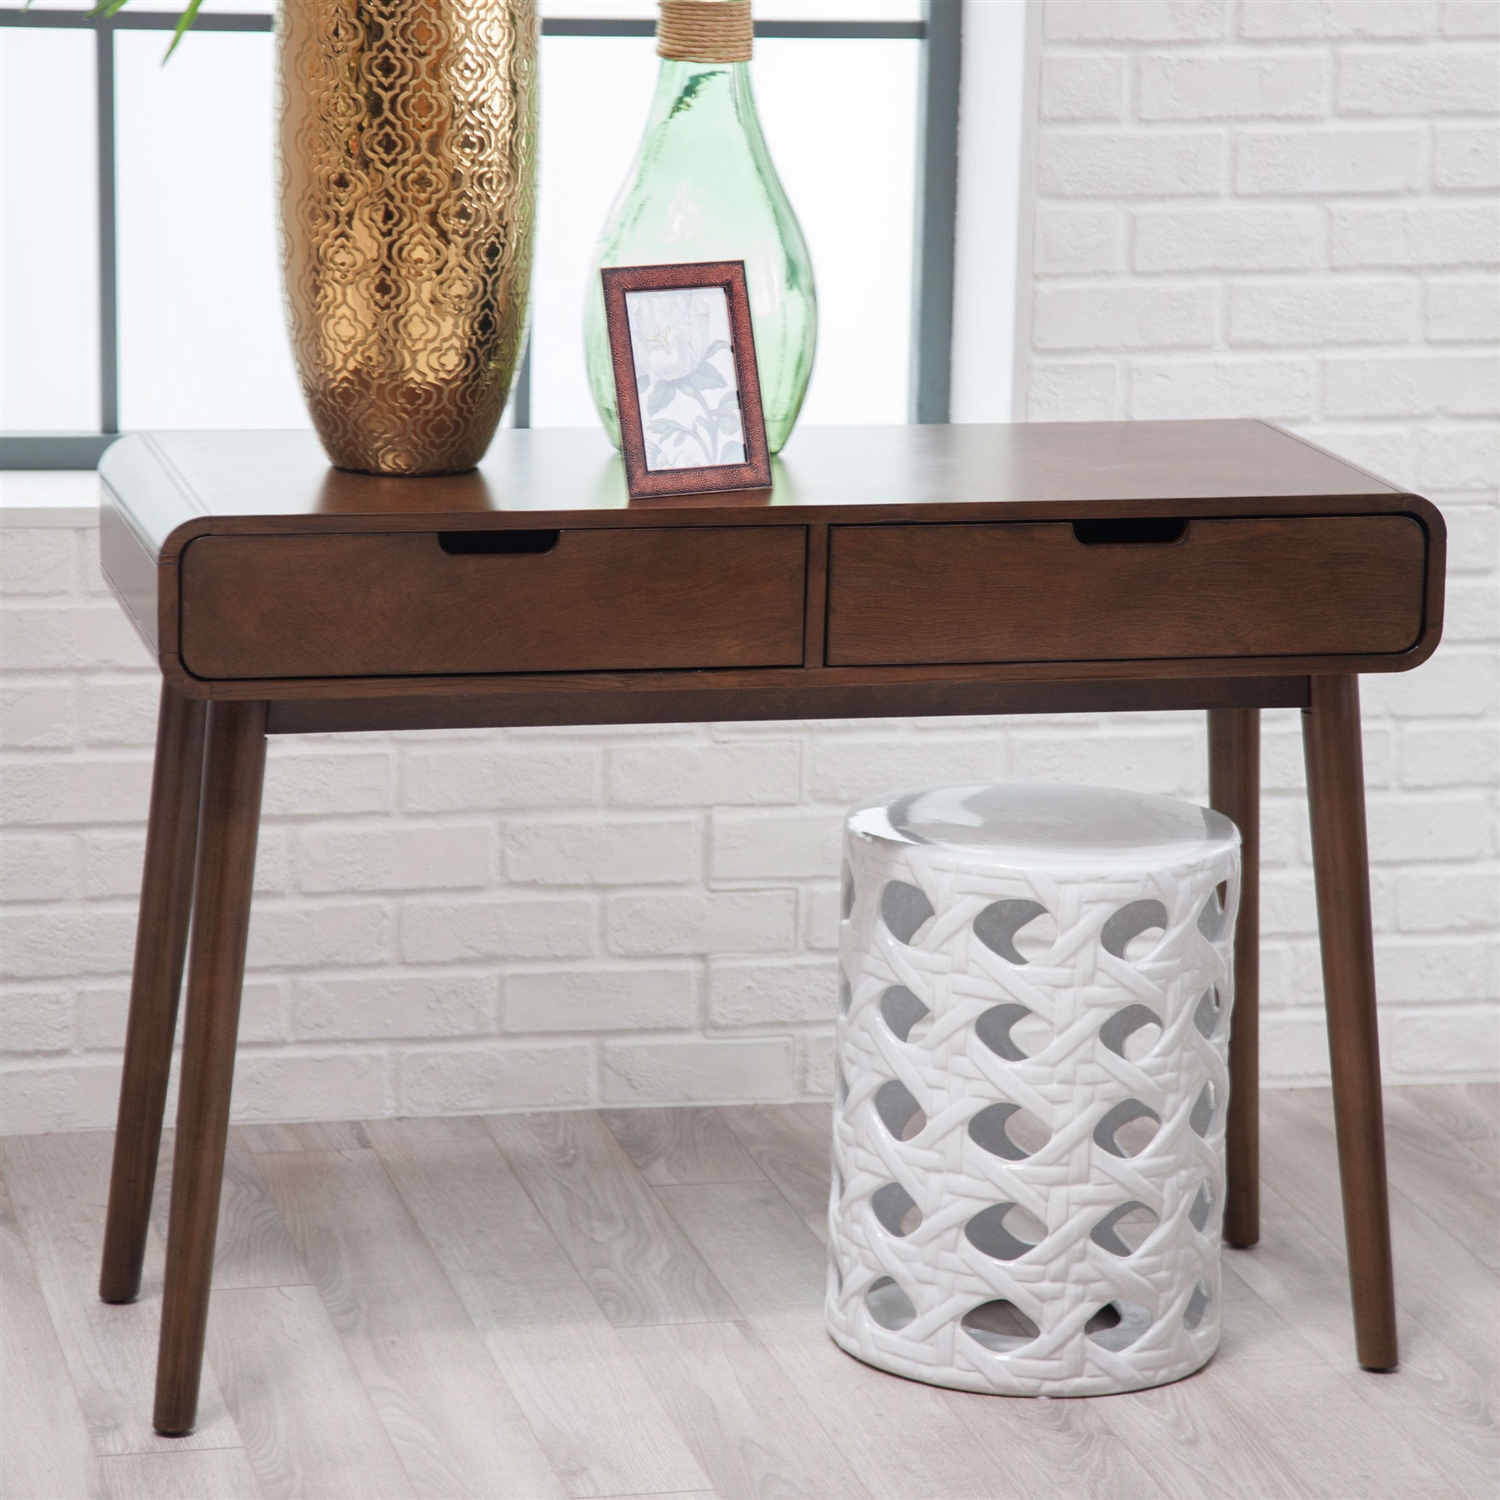 Modern Classic Solid Wood Console Sofa Table in Walnut Wood Finish ...